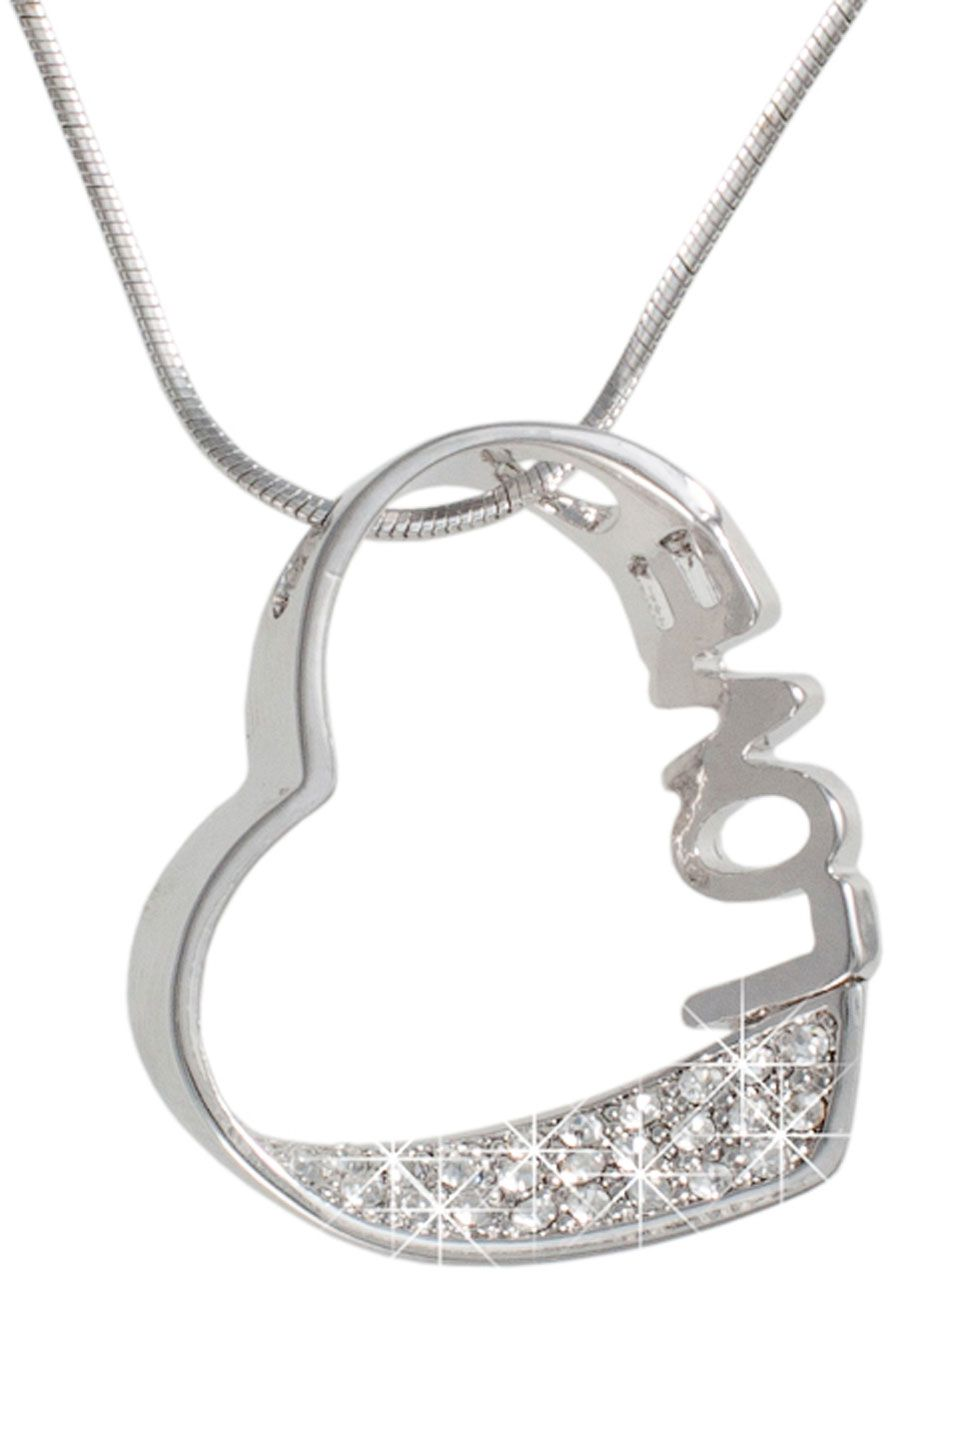 LOVE-Heart Necklace In Silver.